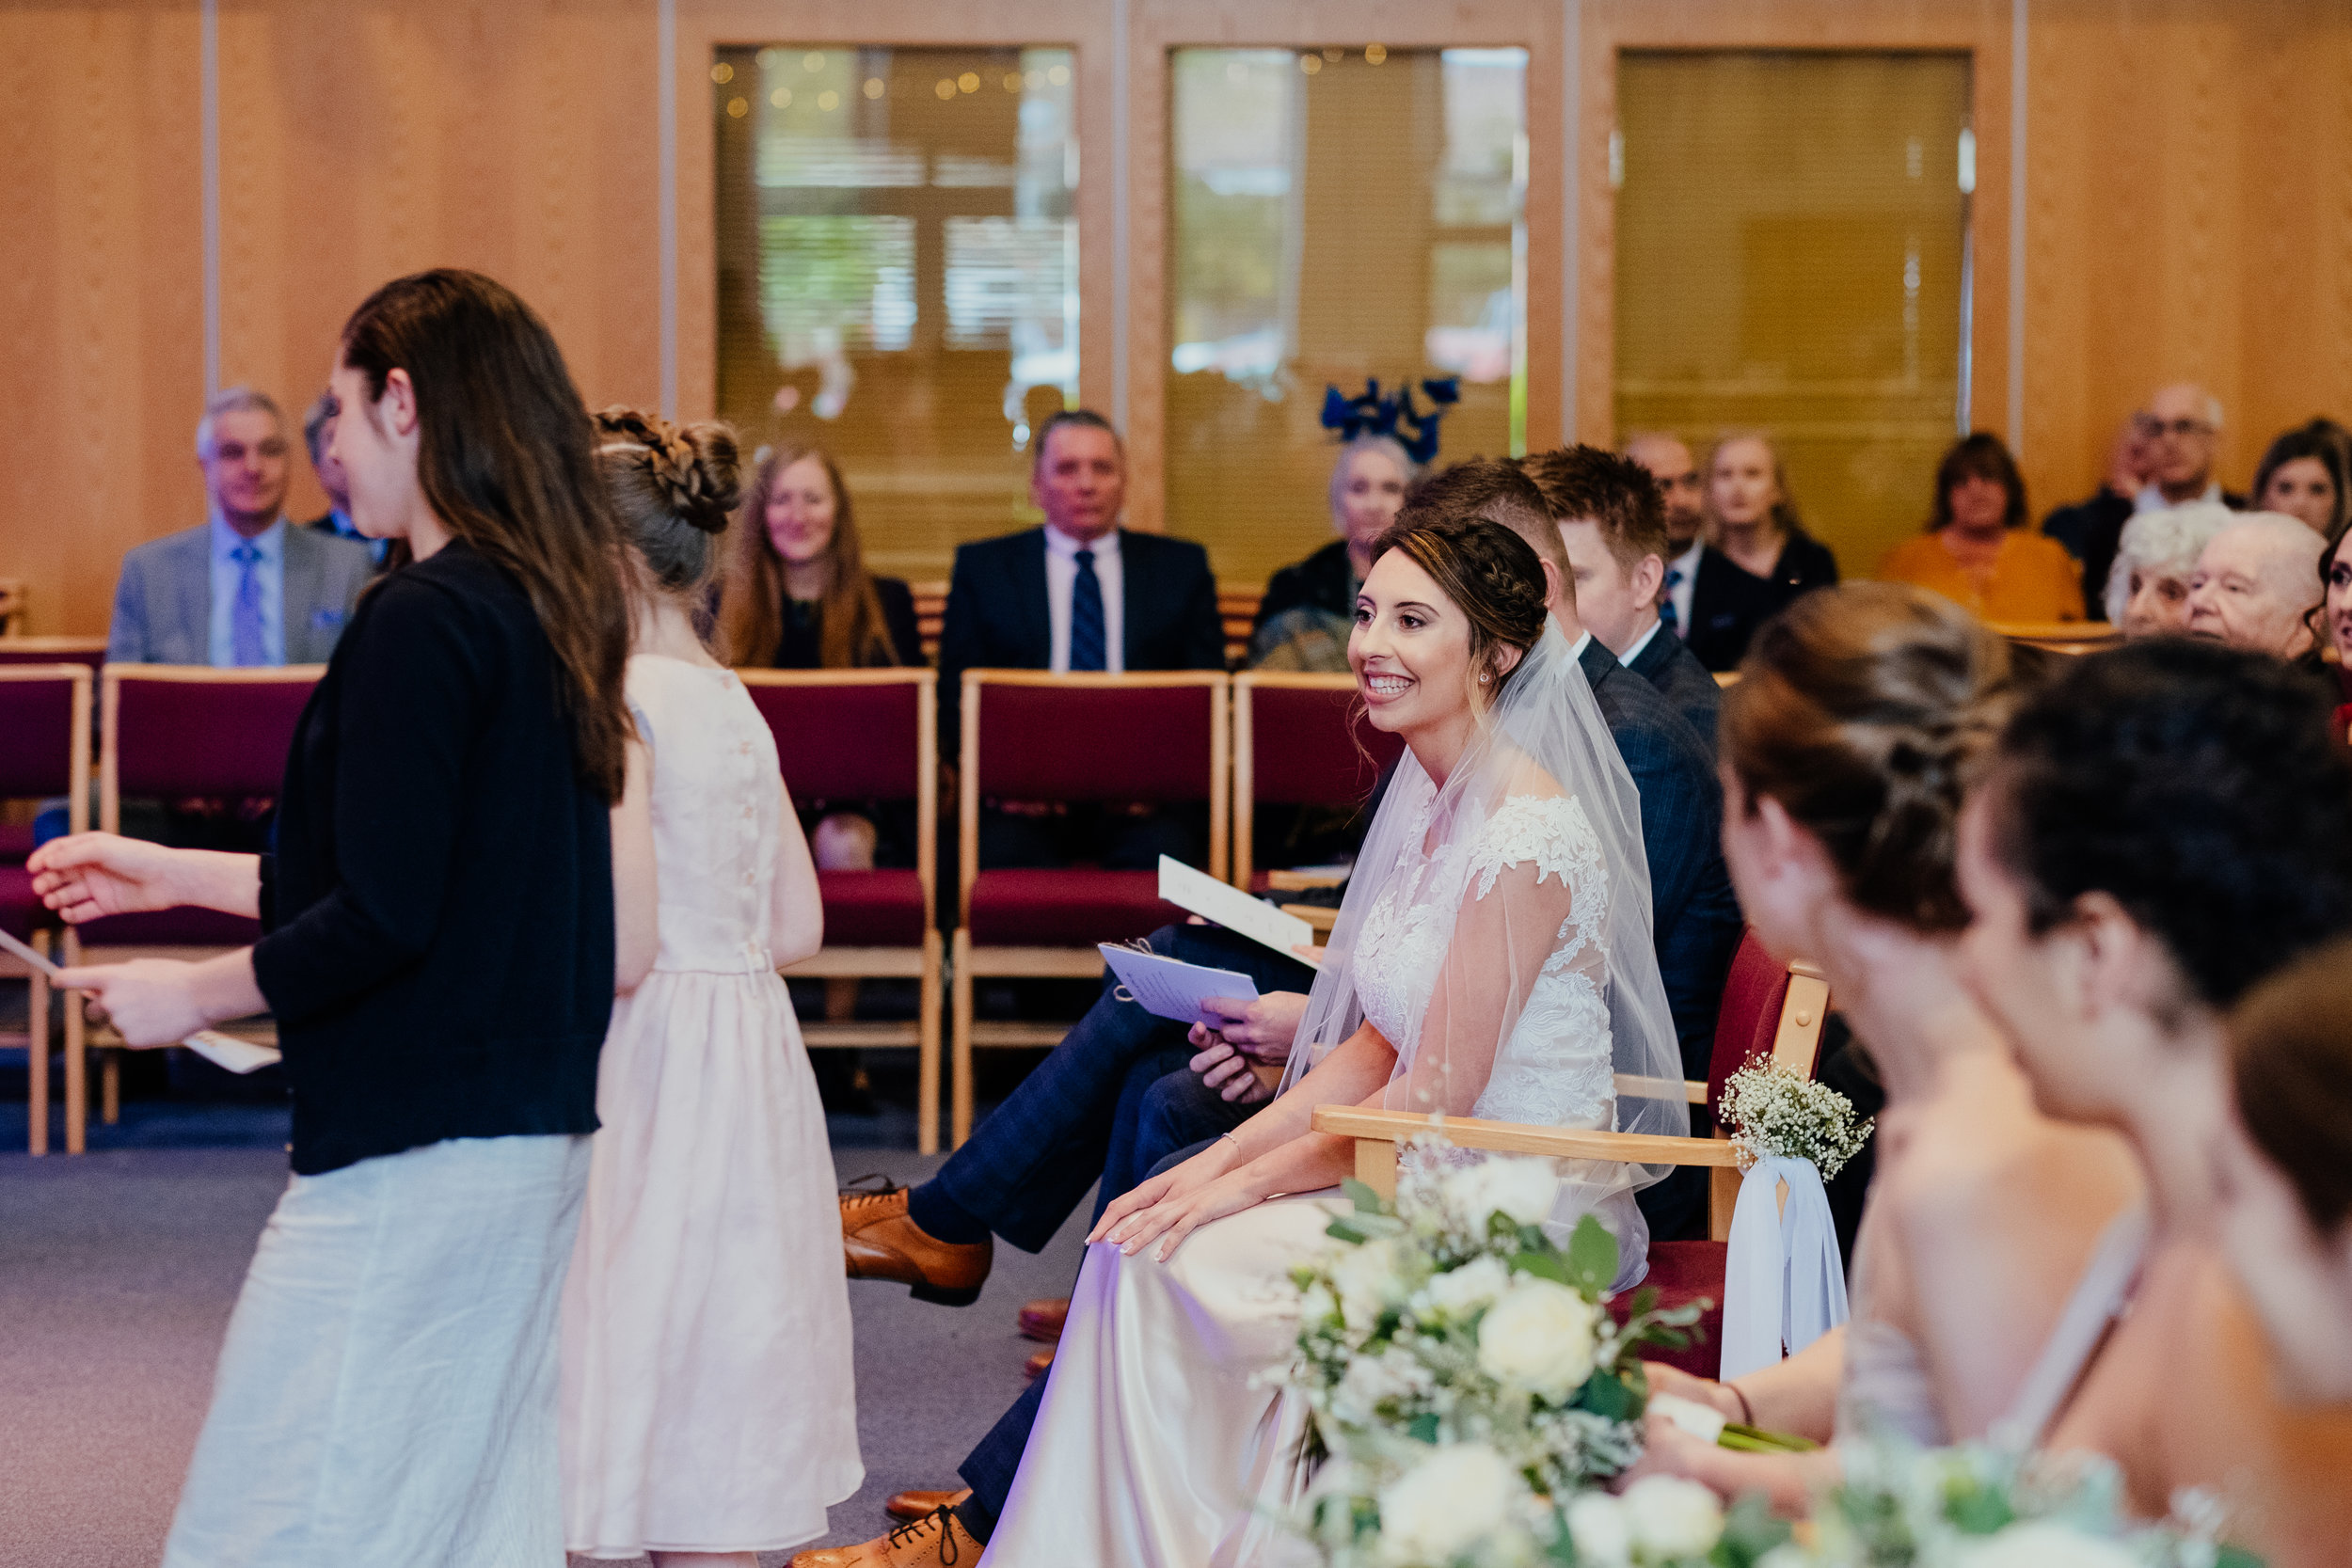 Bride smiles as two members of her family walk to the stage to give a reading